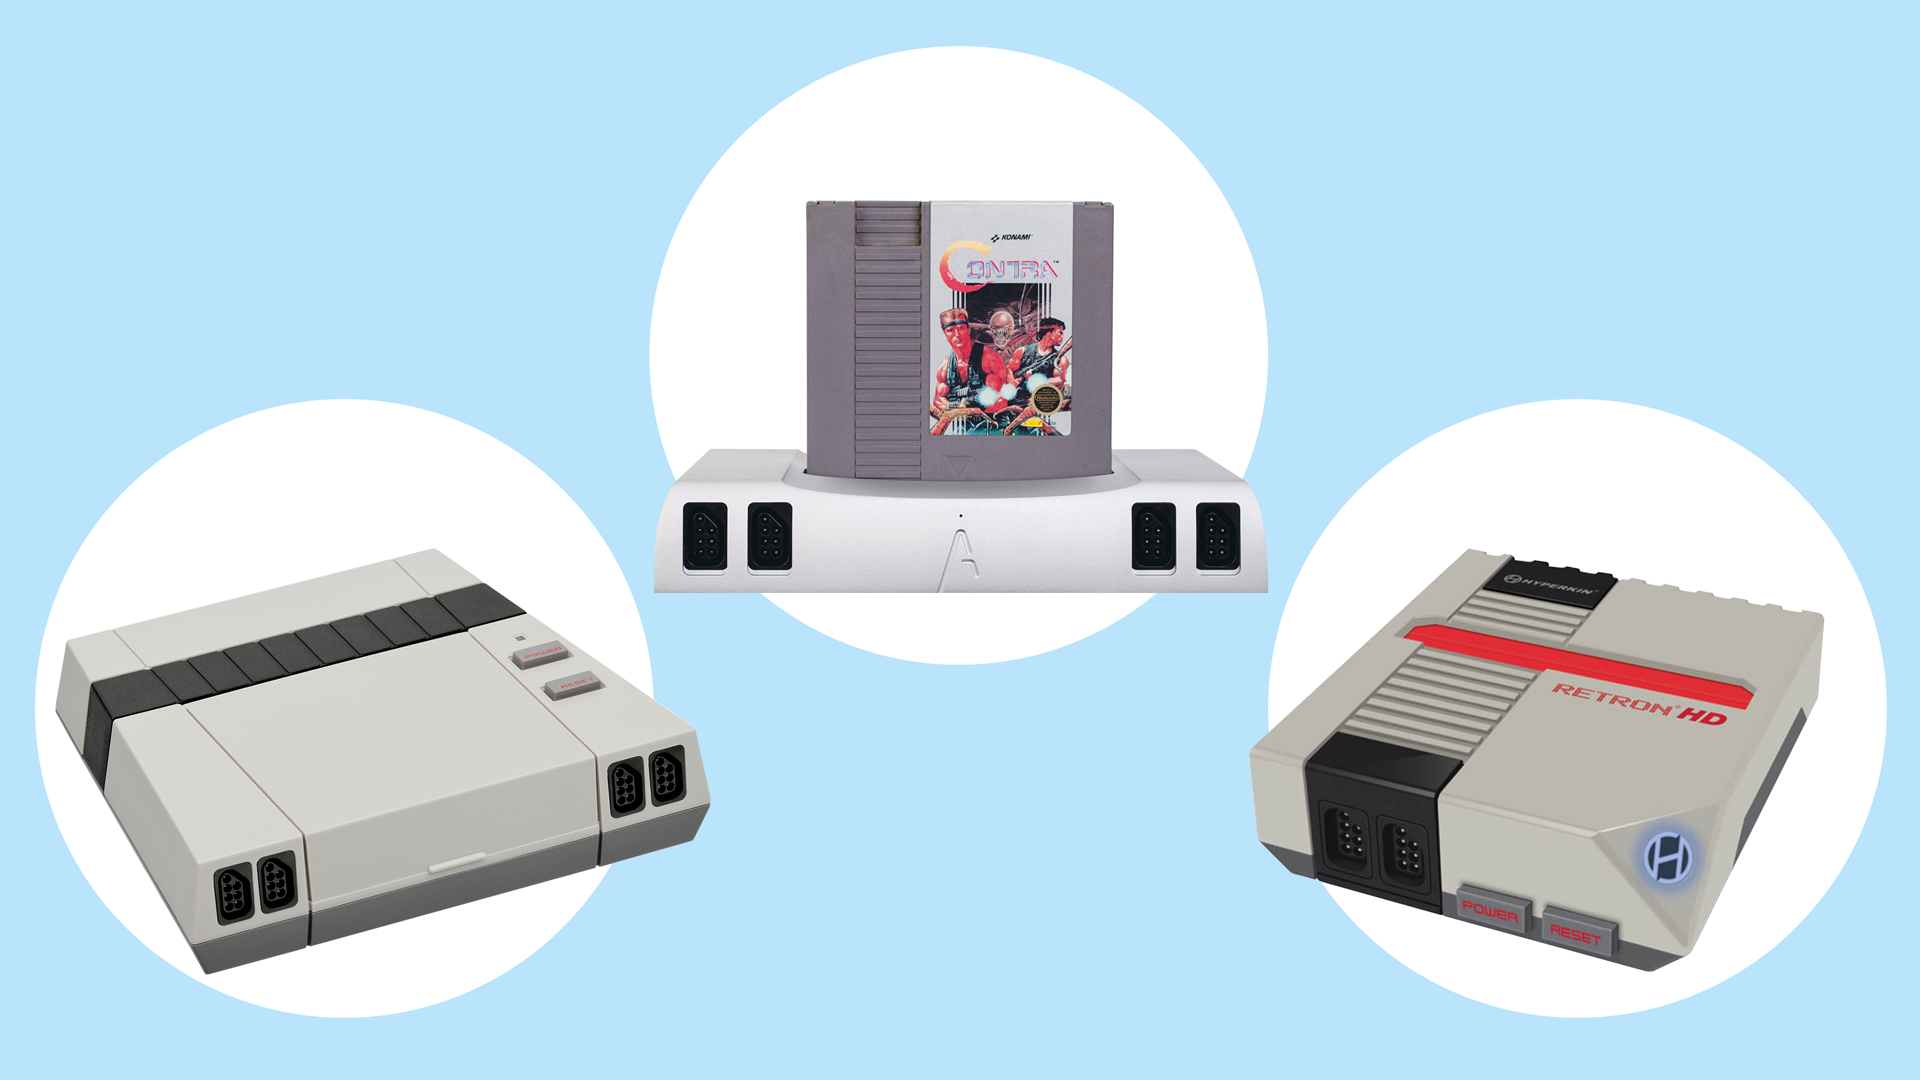 Whether You Have $60 Or $600, There's An HDMI NES For You